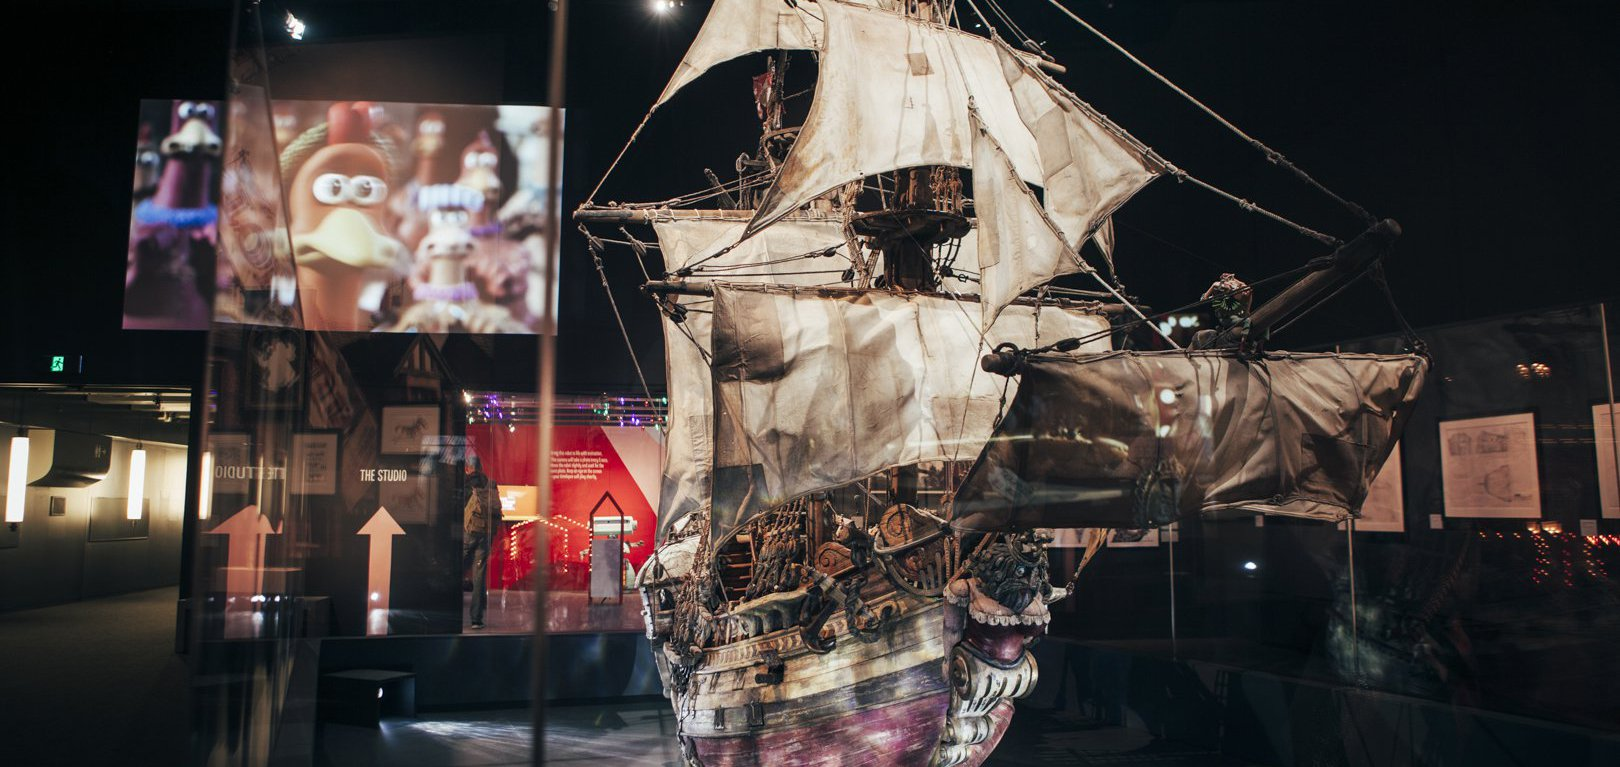 ACMI Aardman exhibition ship